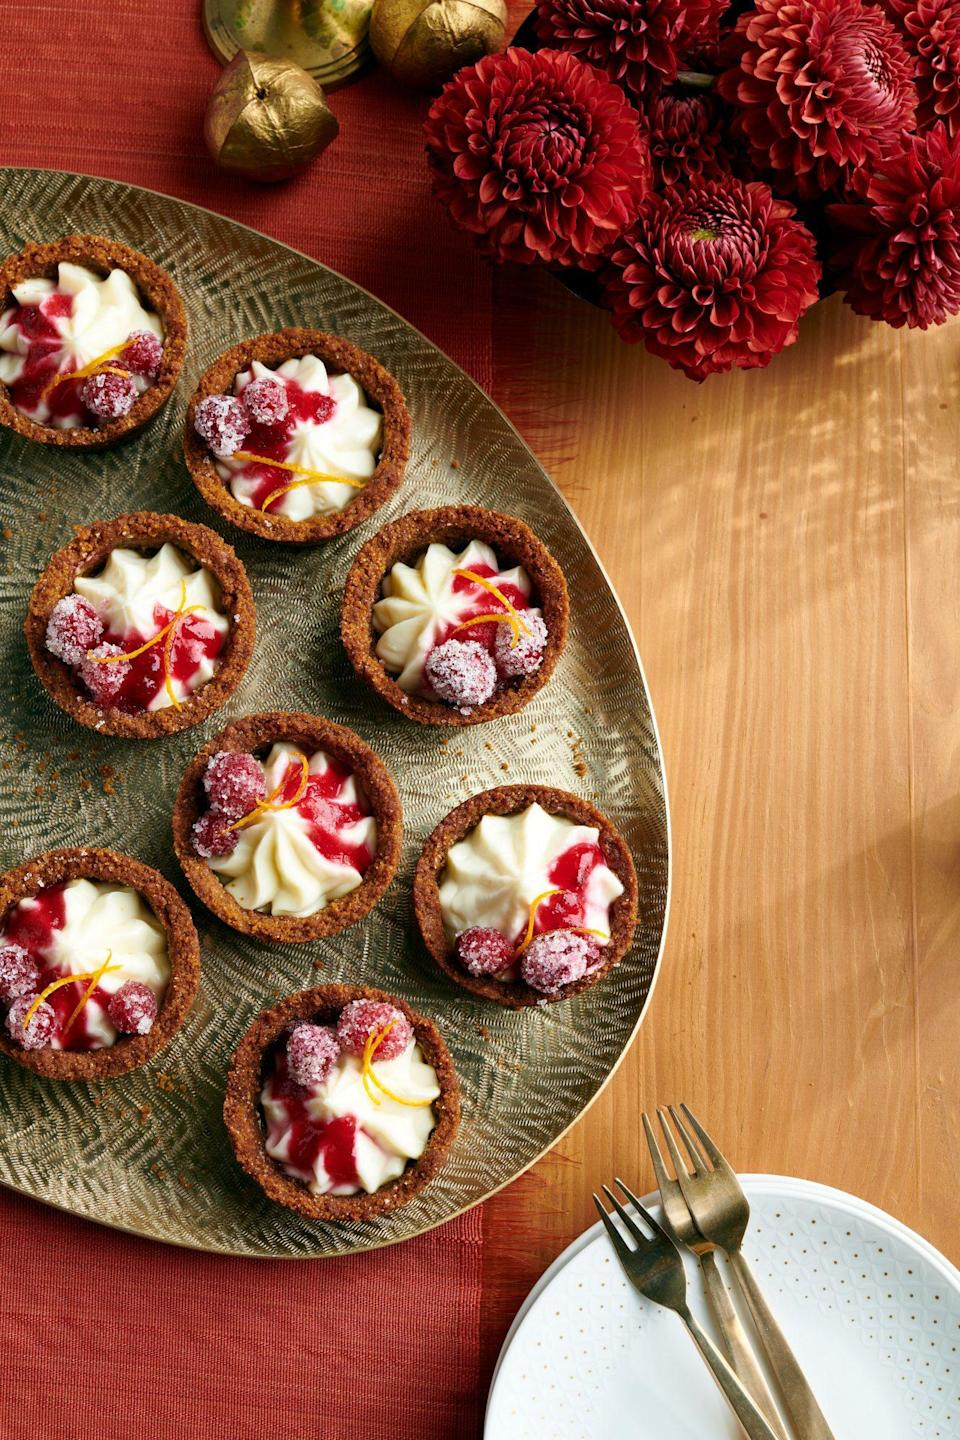 "<p><strong>Recipe: <a href=""https://www.southernliving.com/recipes/mini-cranberry-cheesecake-pies"" rel=""nofollow noopener"" target=""_blank"" data-ylk=""slk:Mini Cranberry-Cheesecake Pies"" class=""link rapid-noclick-resp"">Mini Cranberry-Cheesecake Pies</a></strong></p> <p>These festive little bites adorned many of our readers' Thanksgiving tables, and one even said ""everyone should make them."" Sugared cranberries and a touch of orange zest are the prettiest toppings.</p>"